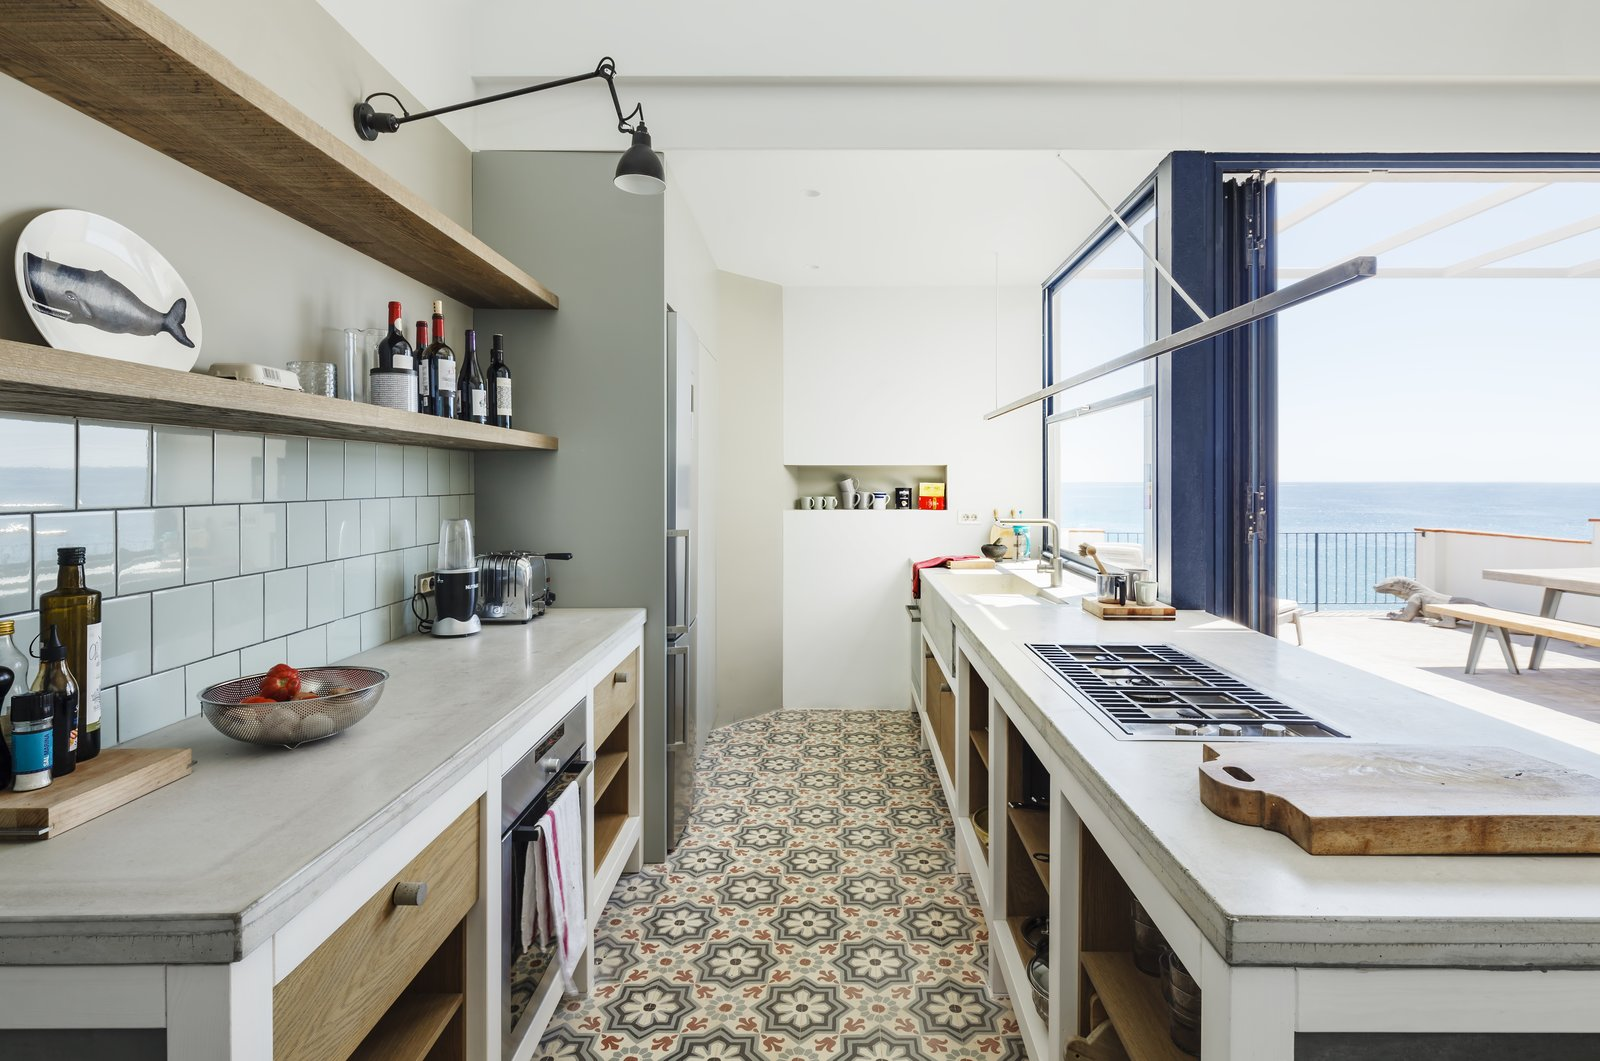 Kitchen, Concrete Counter, Ceramic Tile Floor, Refrigerator, Wall Oven, Porcelain Tile Backsplashe, Wall Lighting, Range, and Drop In Sink  Photo 8 of 16 in A Careful Renovation Brings New Life to a Family's Heritage Home on the Spanish Coast